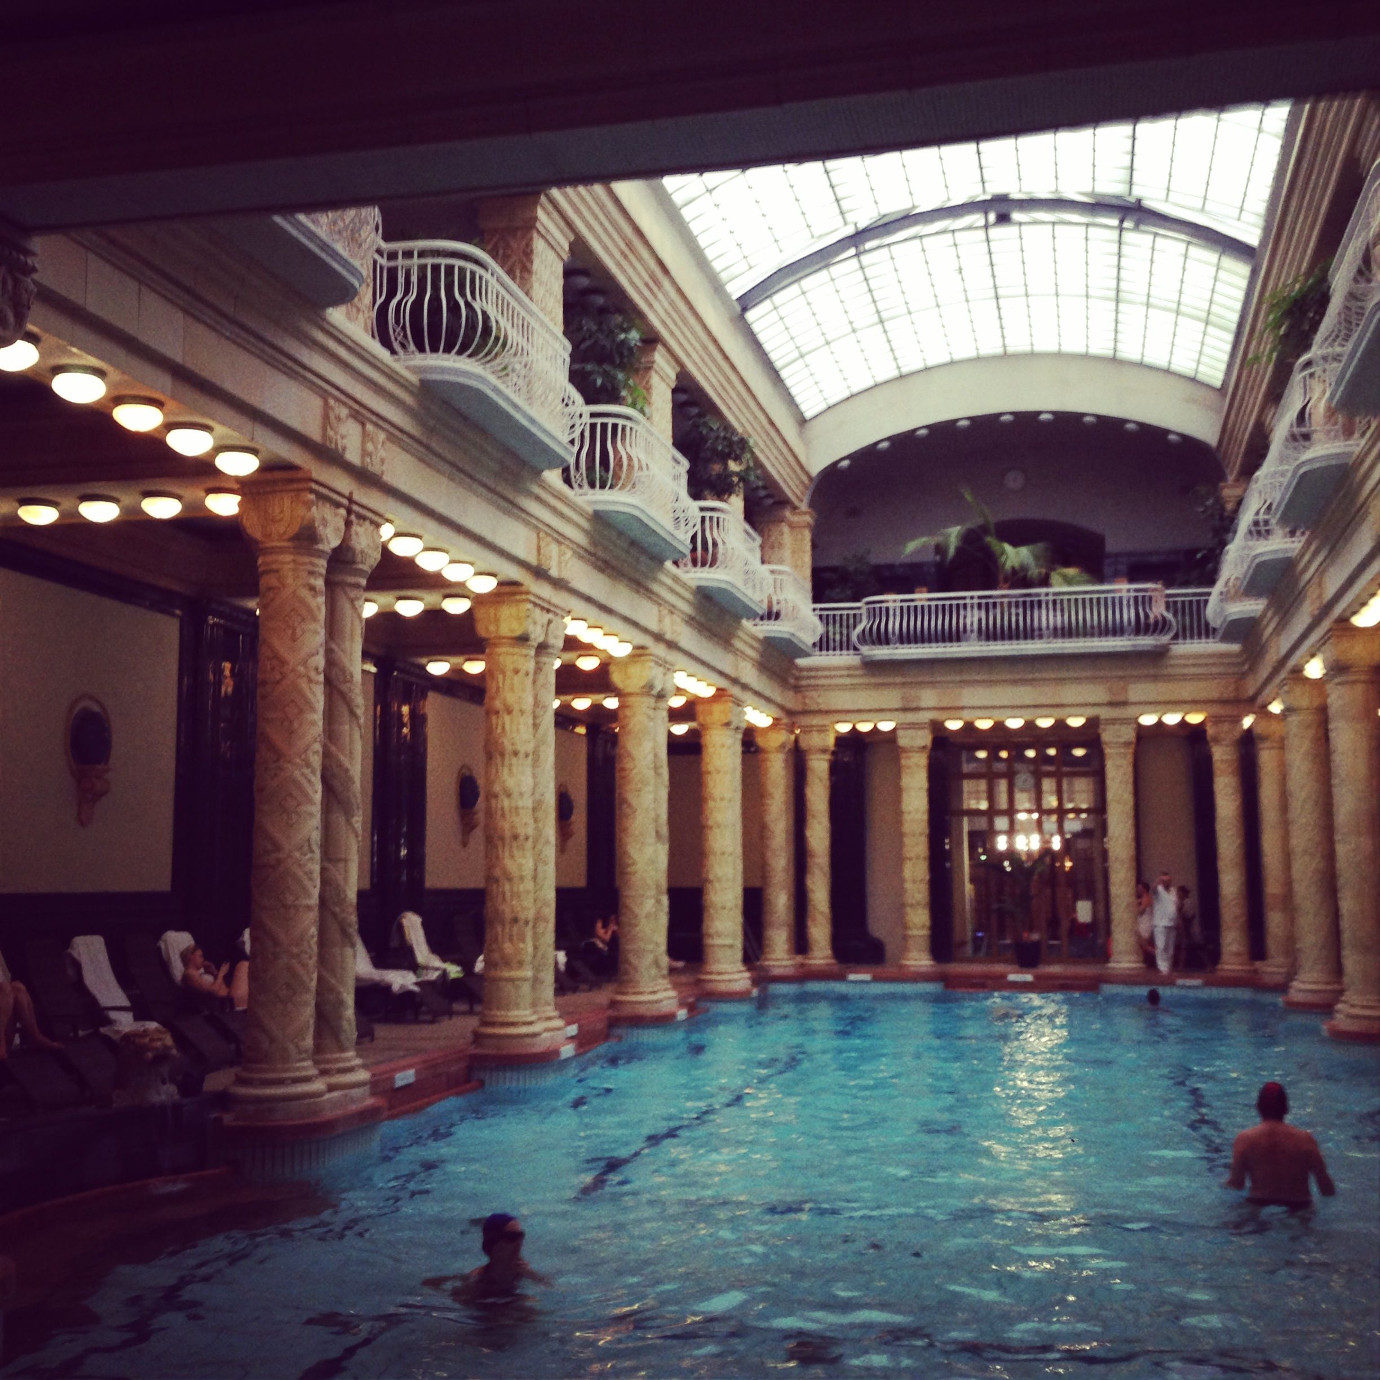 One of Budapest's many famous thermal pools. The superhot pool scene with Luce and Daniel was filmed here.